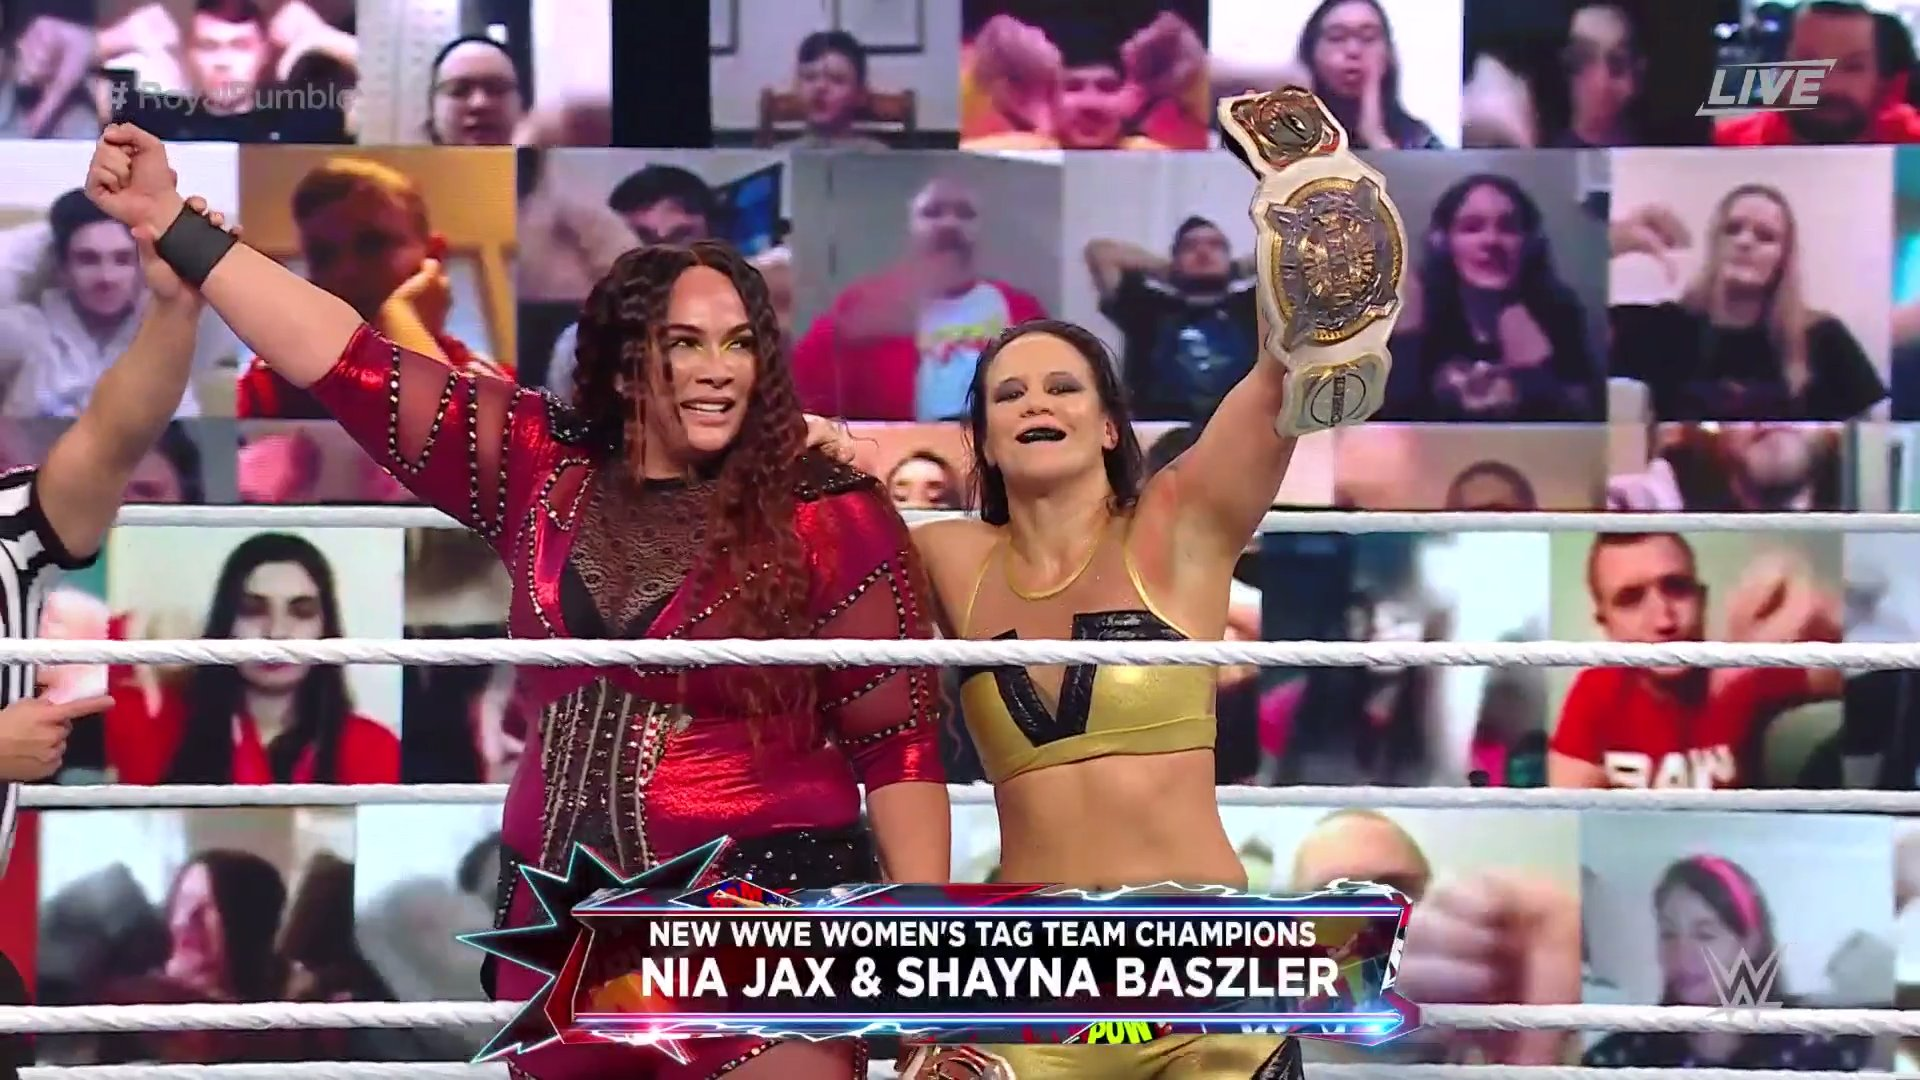 We have new WWE Womens Tag Champions